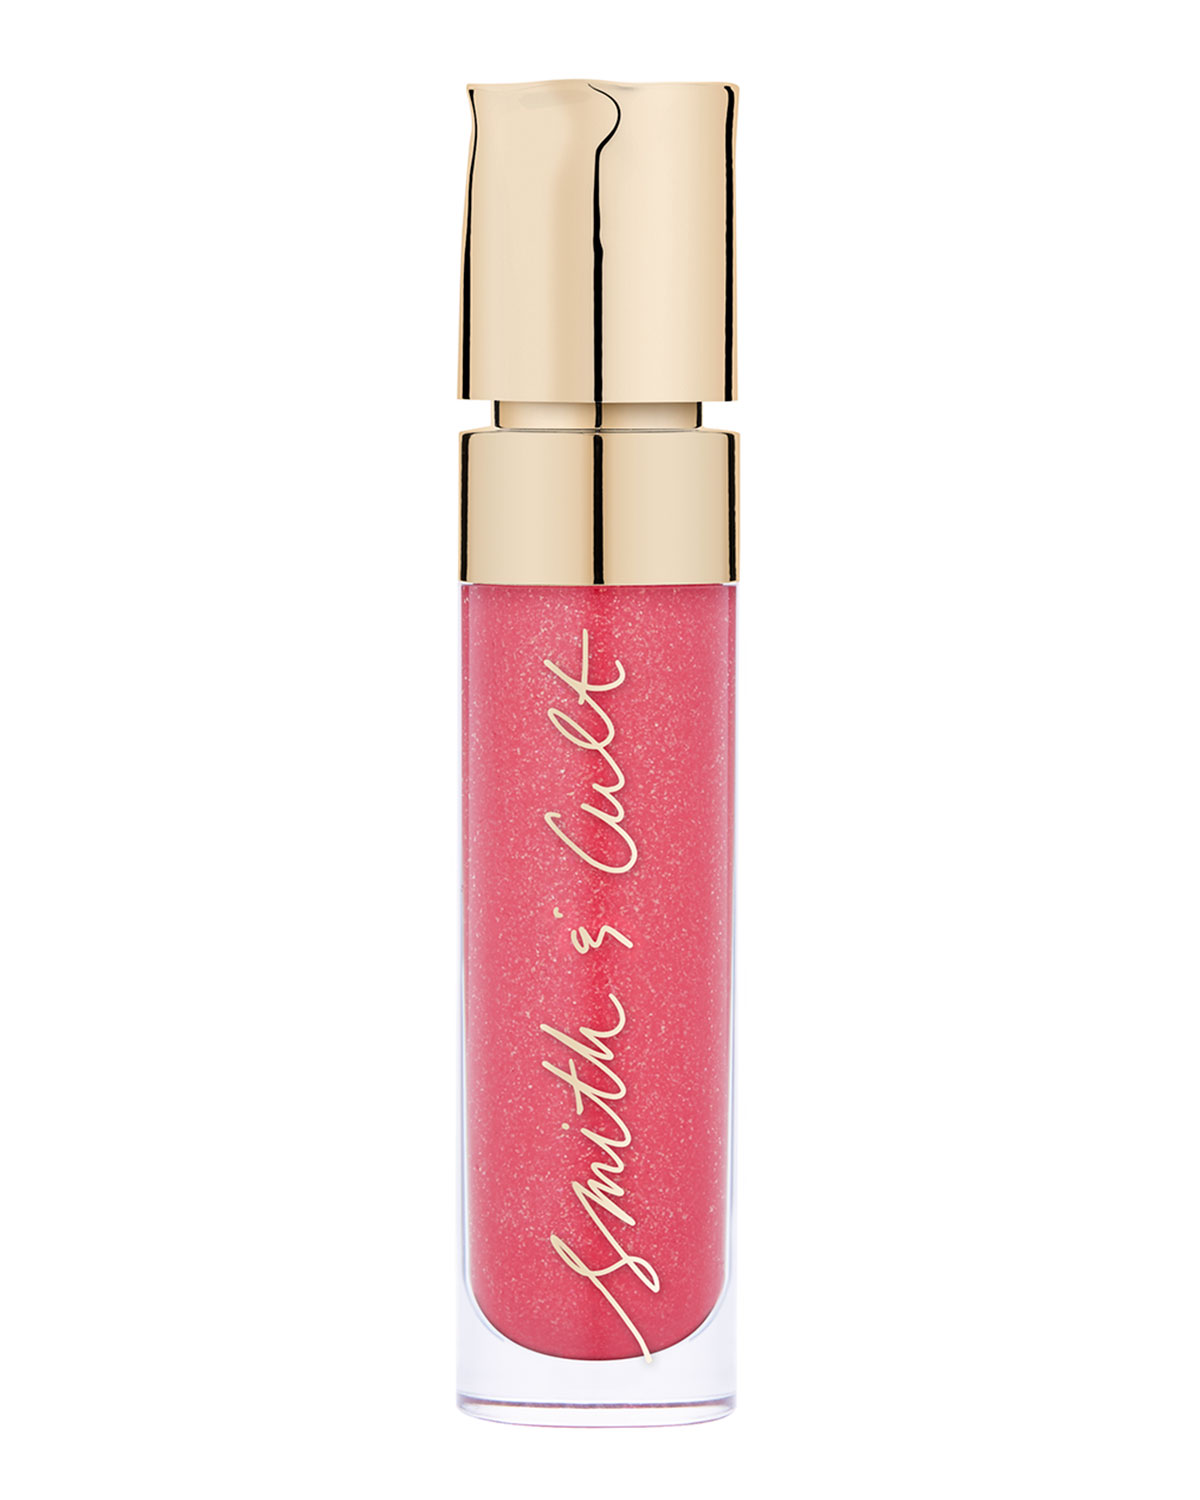 Smith & Cult Hi-Speed Sonnet Lip Lacquer, 5 mL